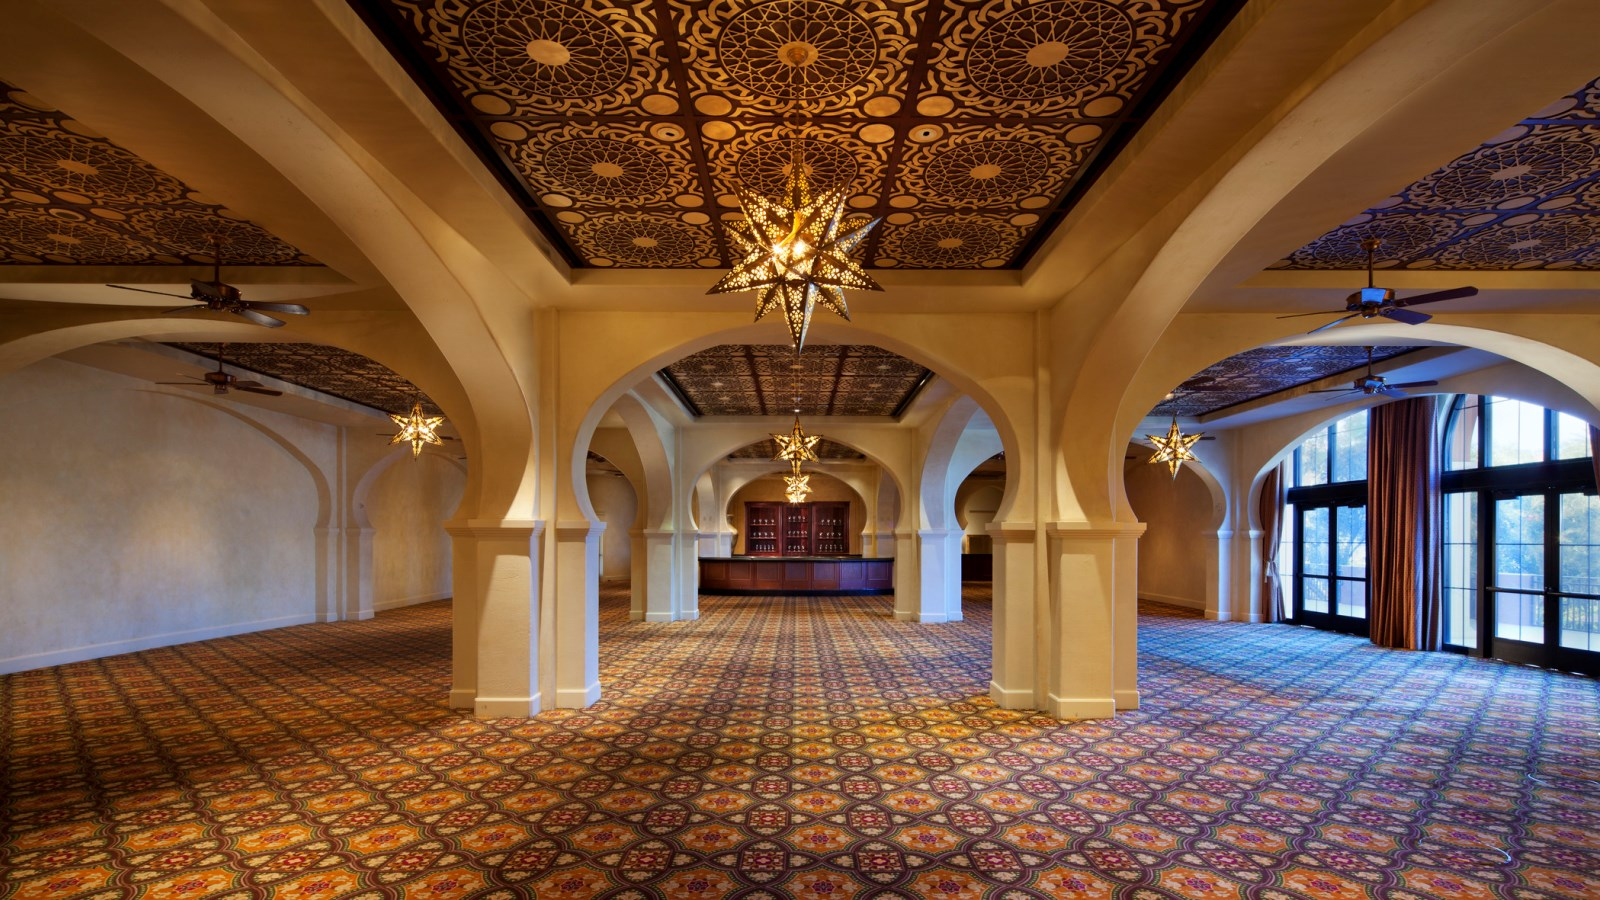 Lake Las Vegas Wedding Venues - Baraka Ballroom